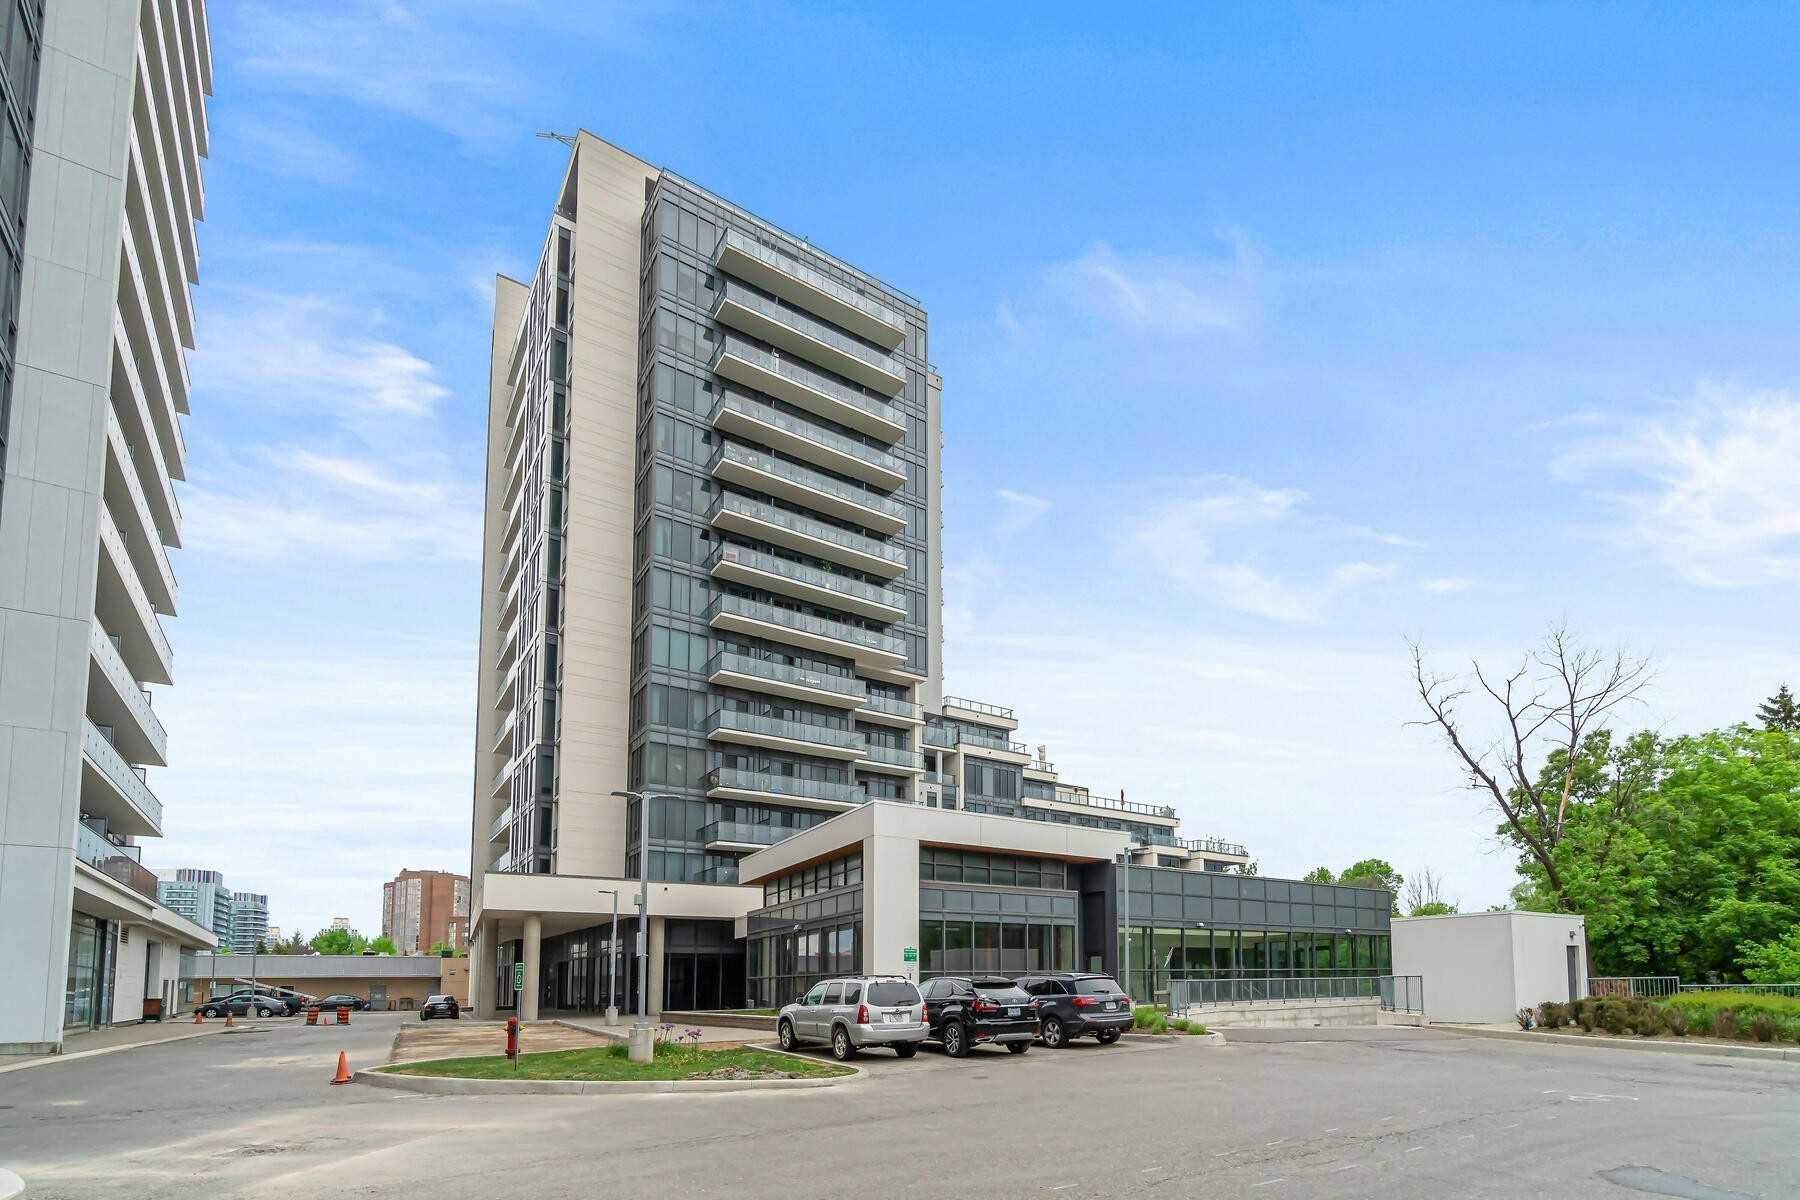 9618 Yonge St, unit 610 for sale in Toronto - image #2